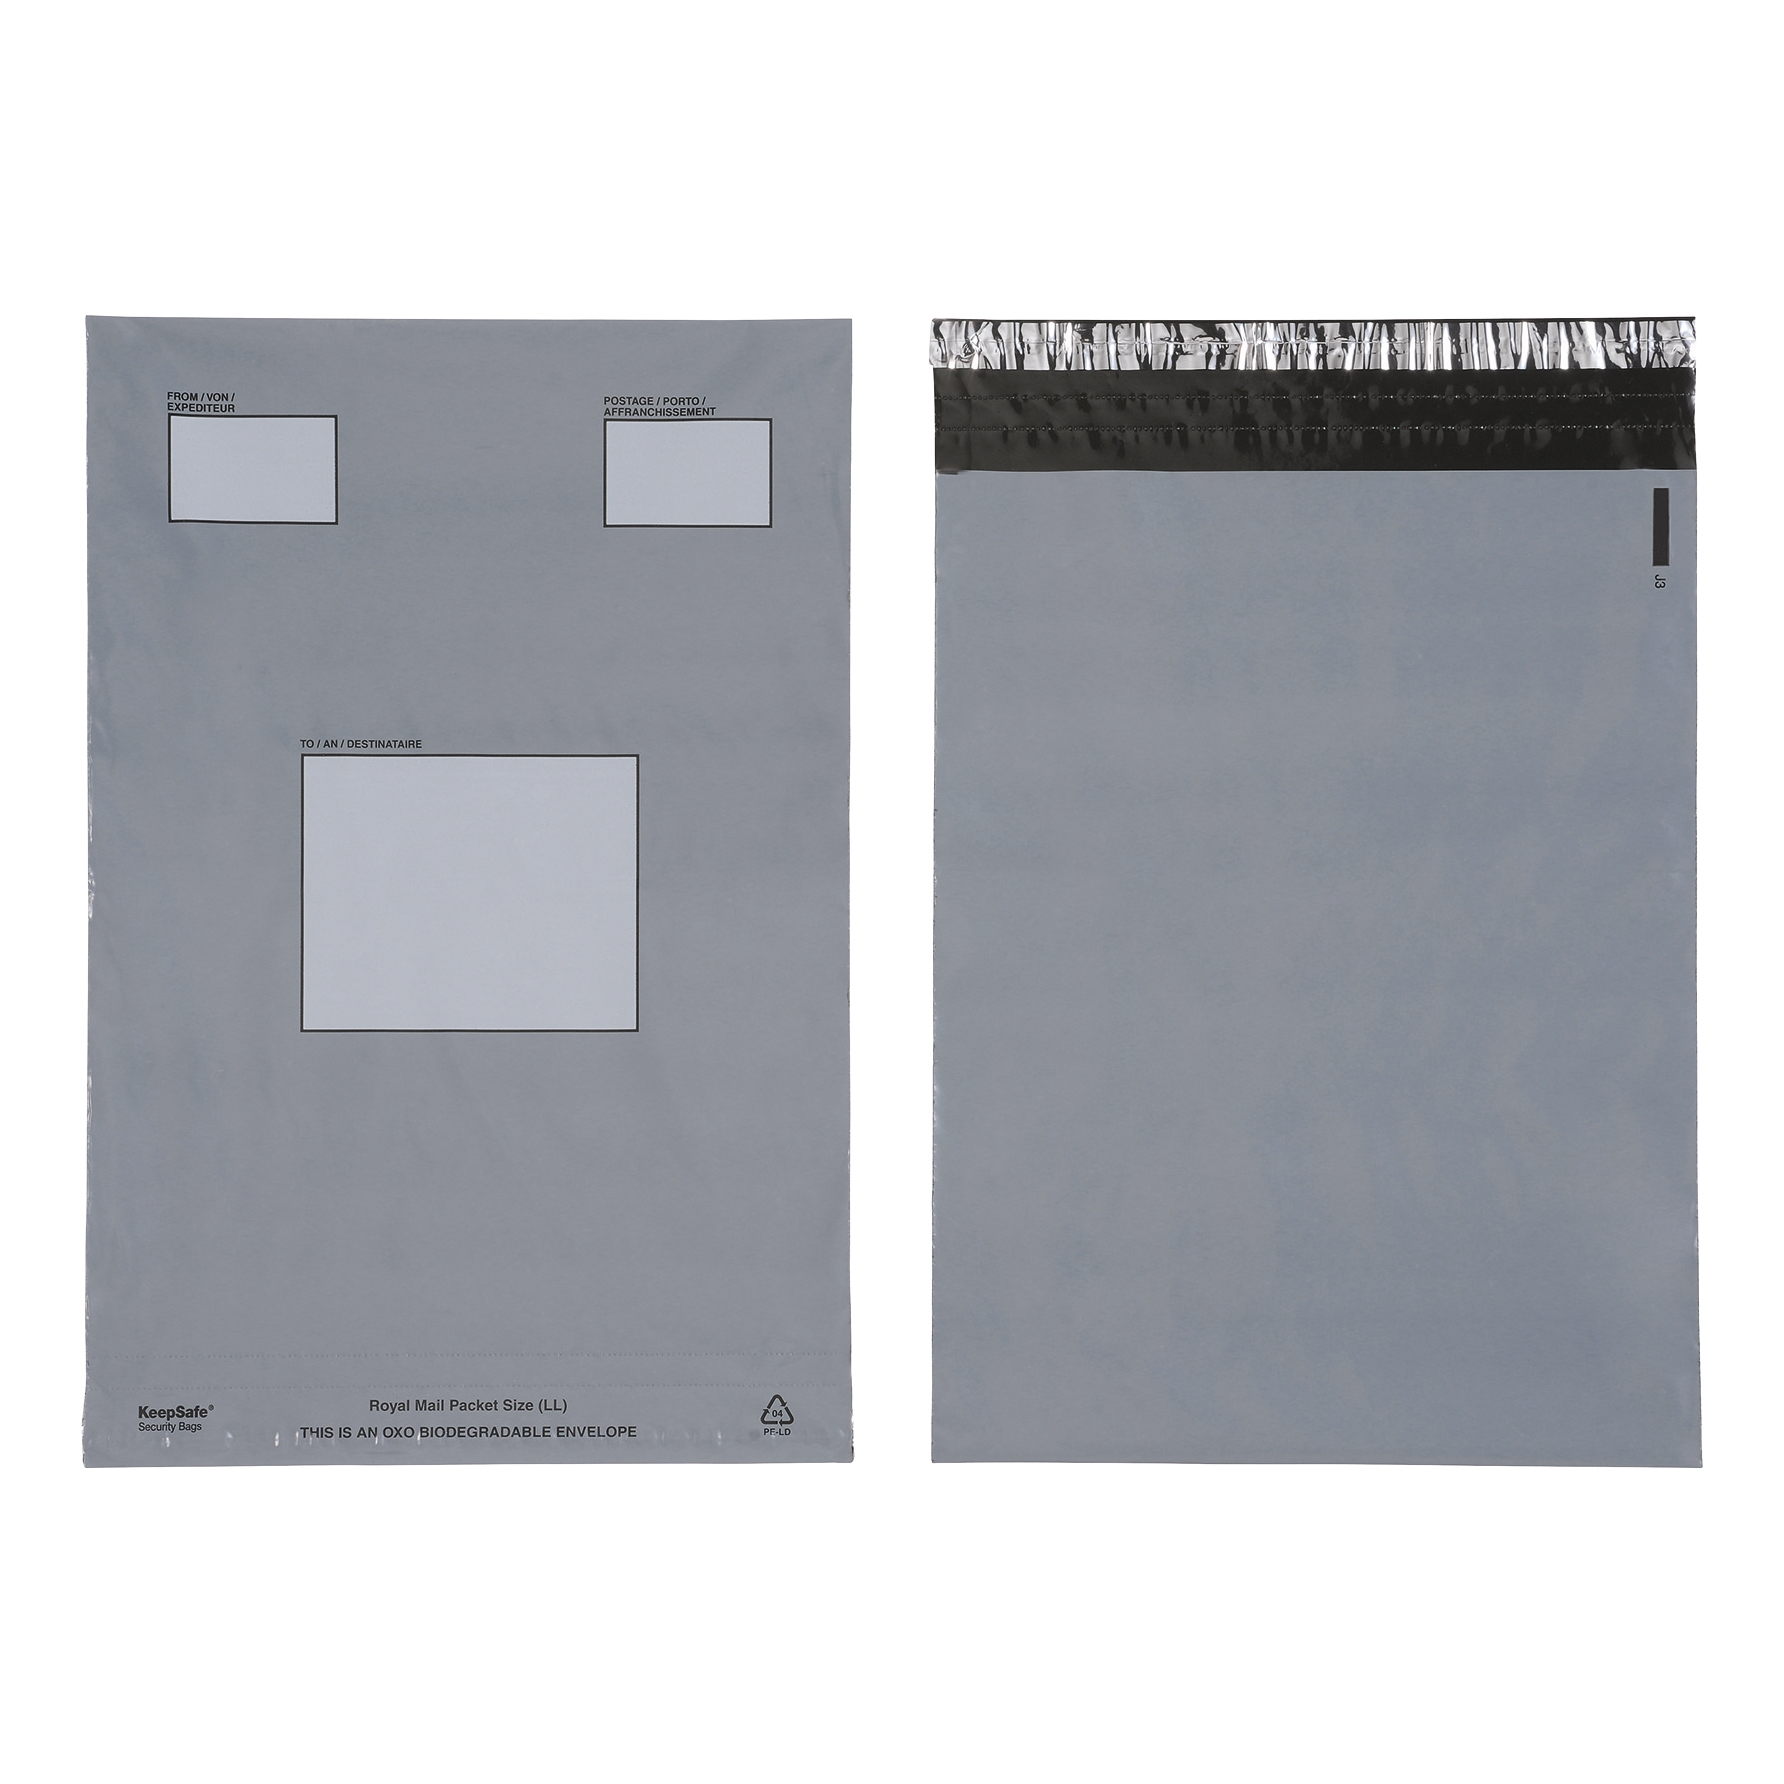 Keepsafe Biodegradable Extra Strong Envelope Opaque 240x320mm Peel & Seal Ref KSV-BIO2 Pack 100